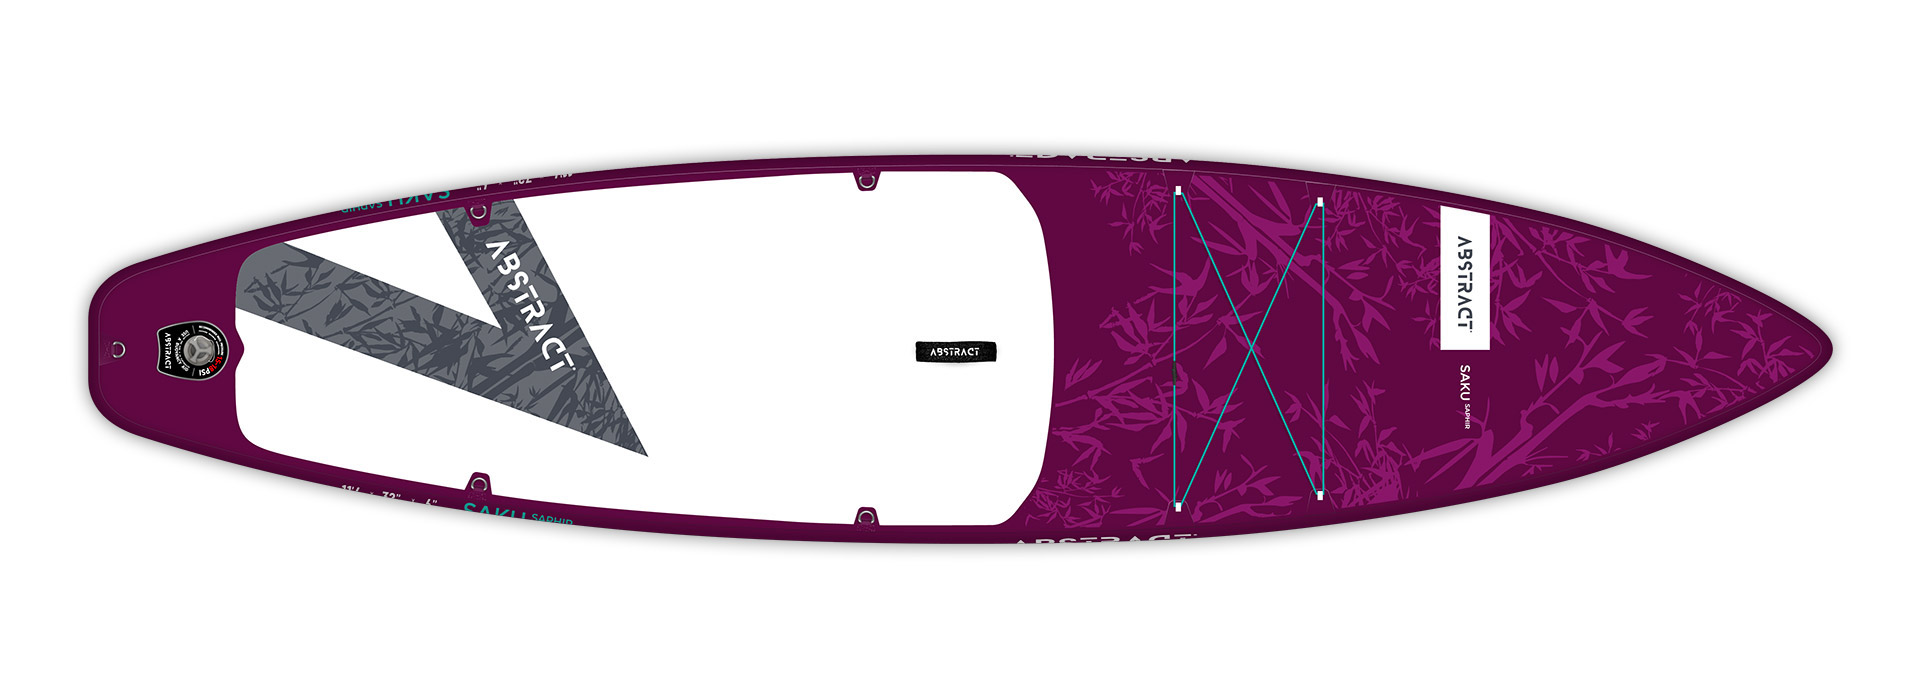 Planche de paddle Board gonflable Saku Saphir (violet) Abstract 2021